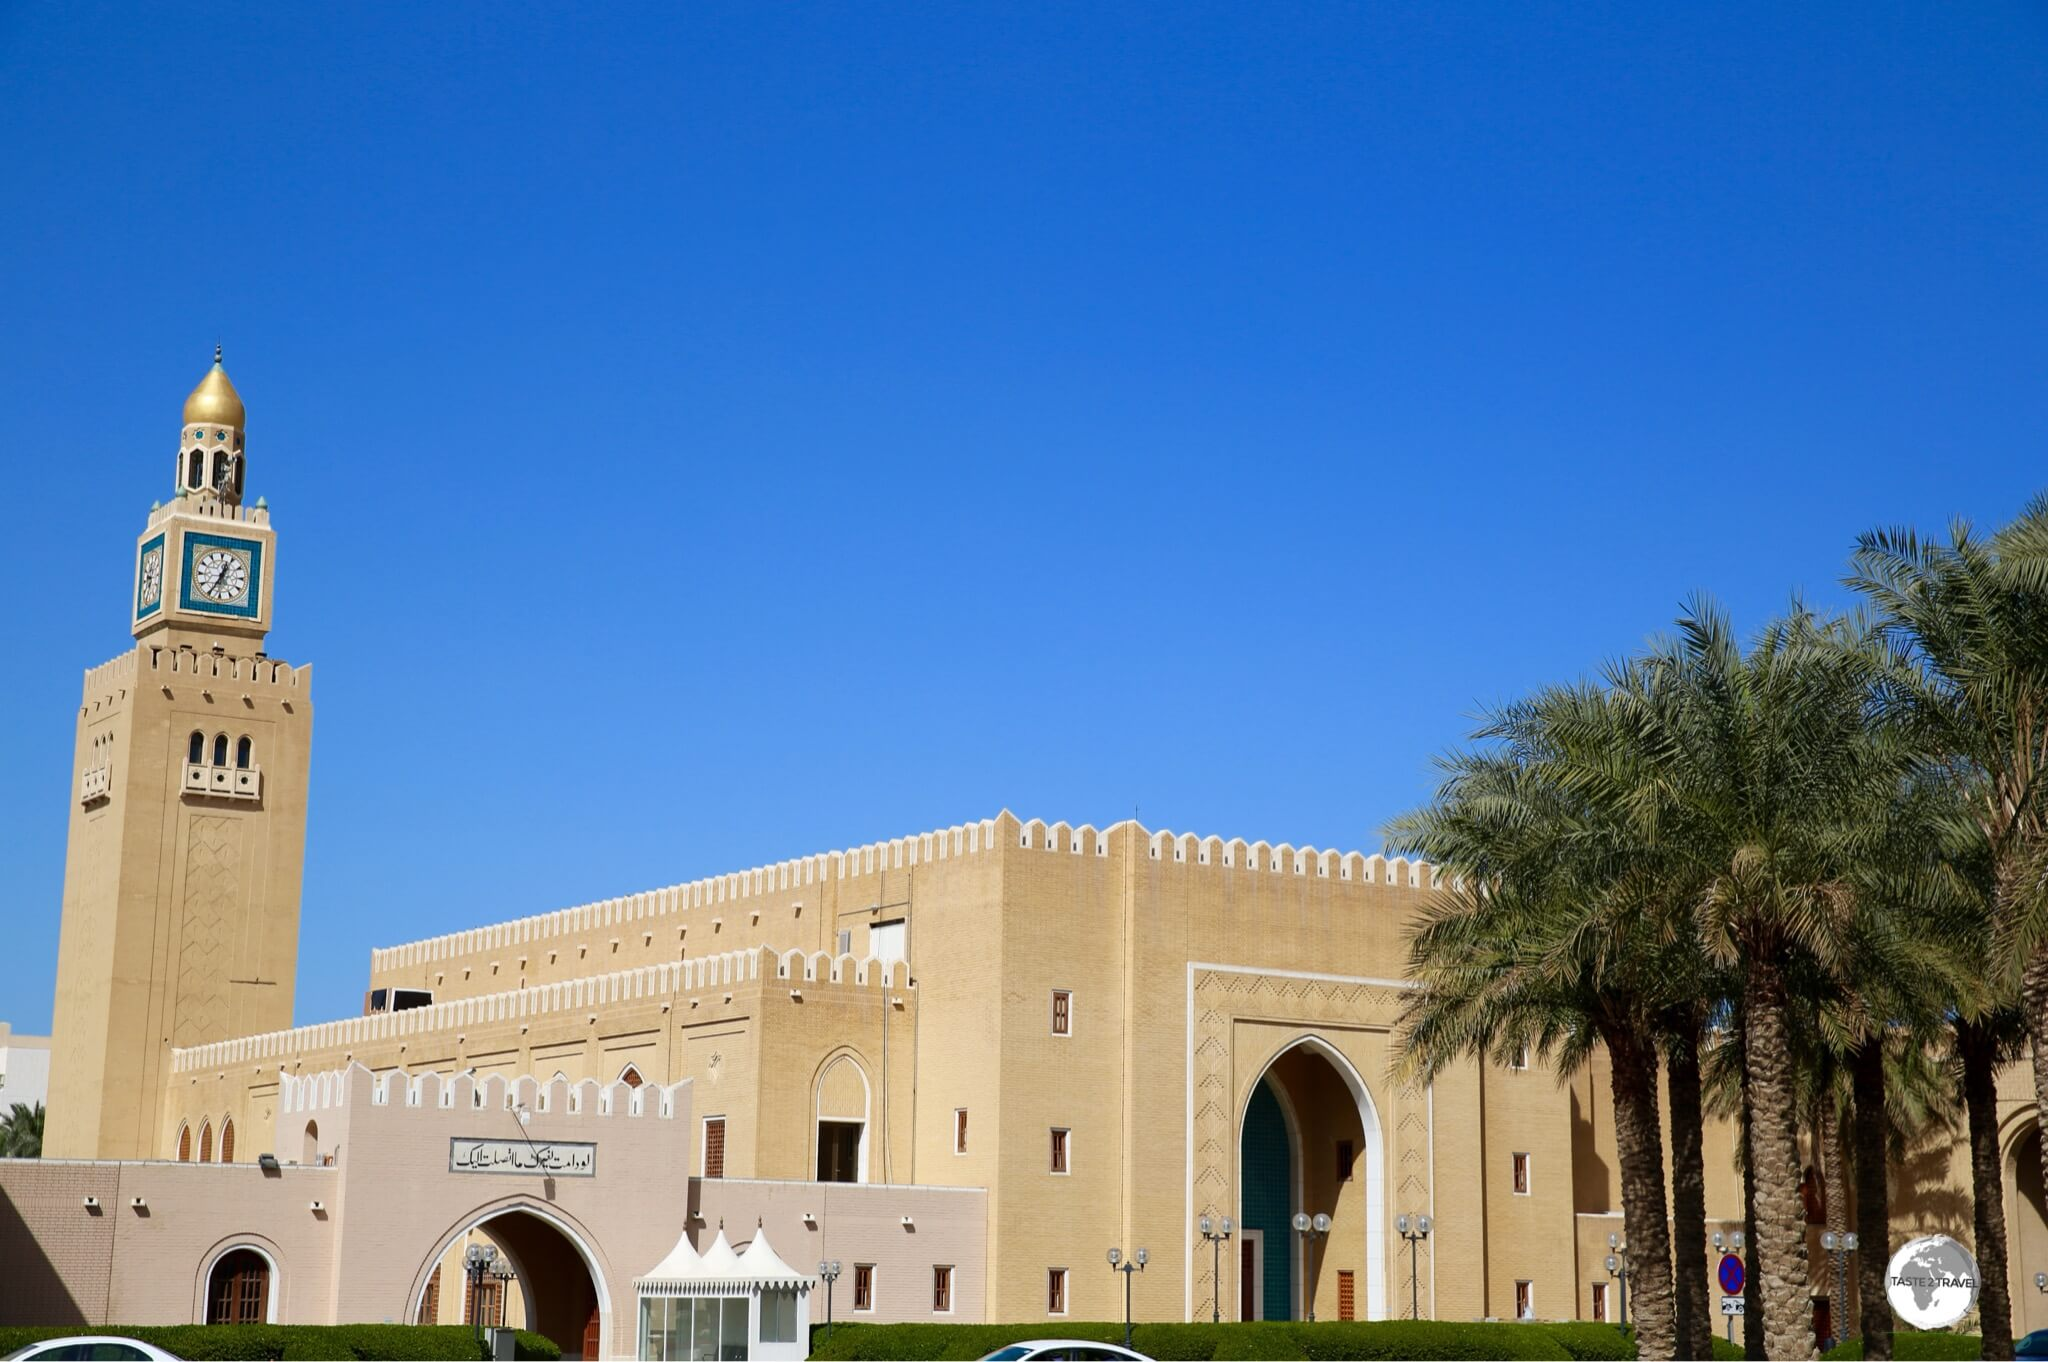 Located on the waterfront, historic Al Seif Palace is one very large,vacant palace.